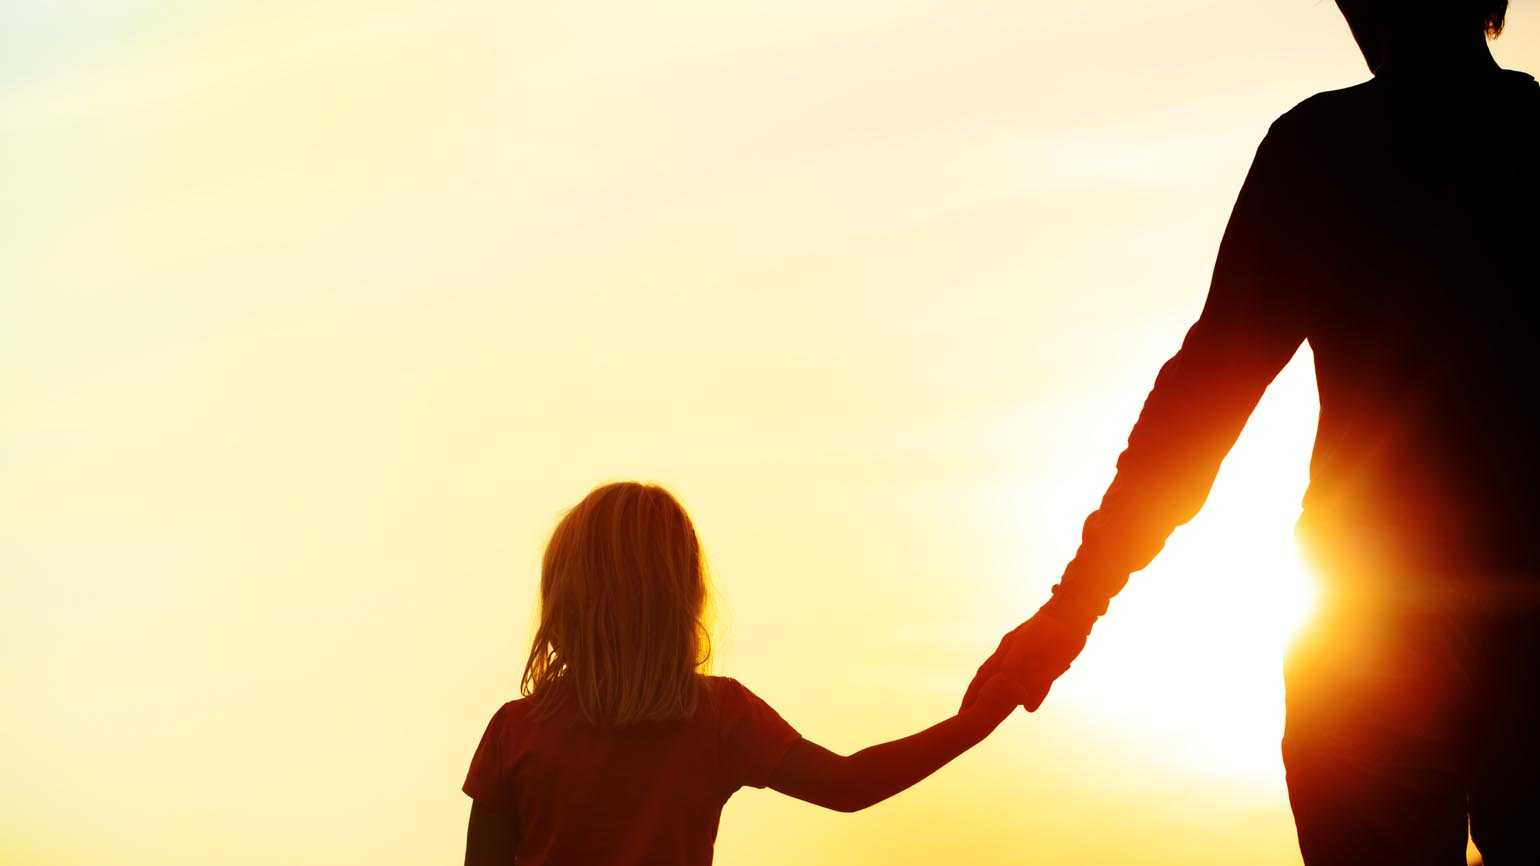 A silhouette of a father and daughter holding hands as the sun sets.